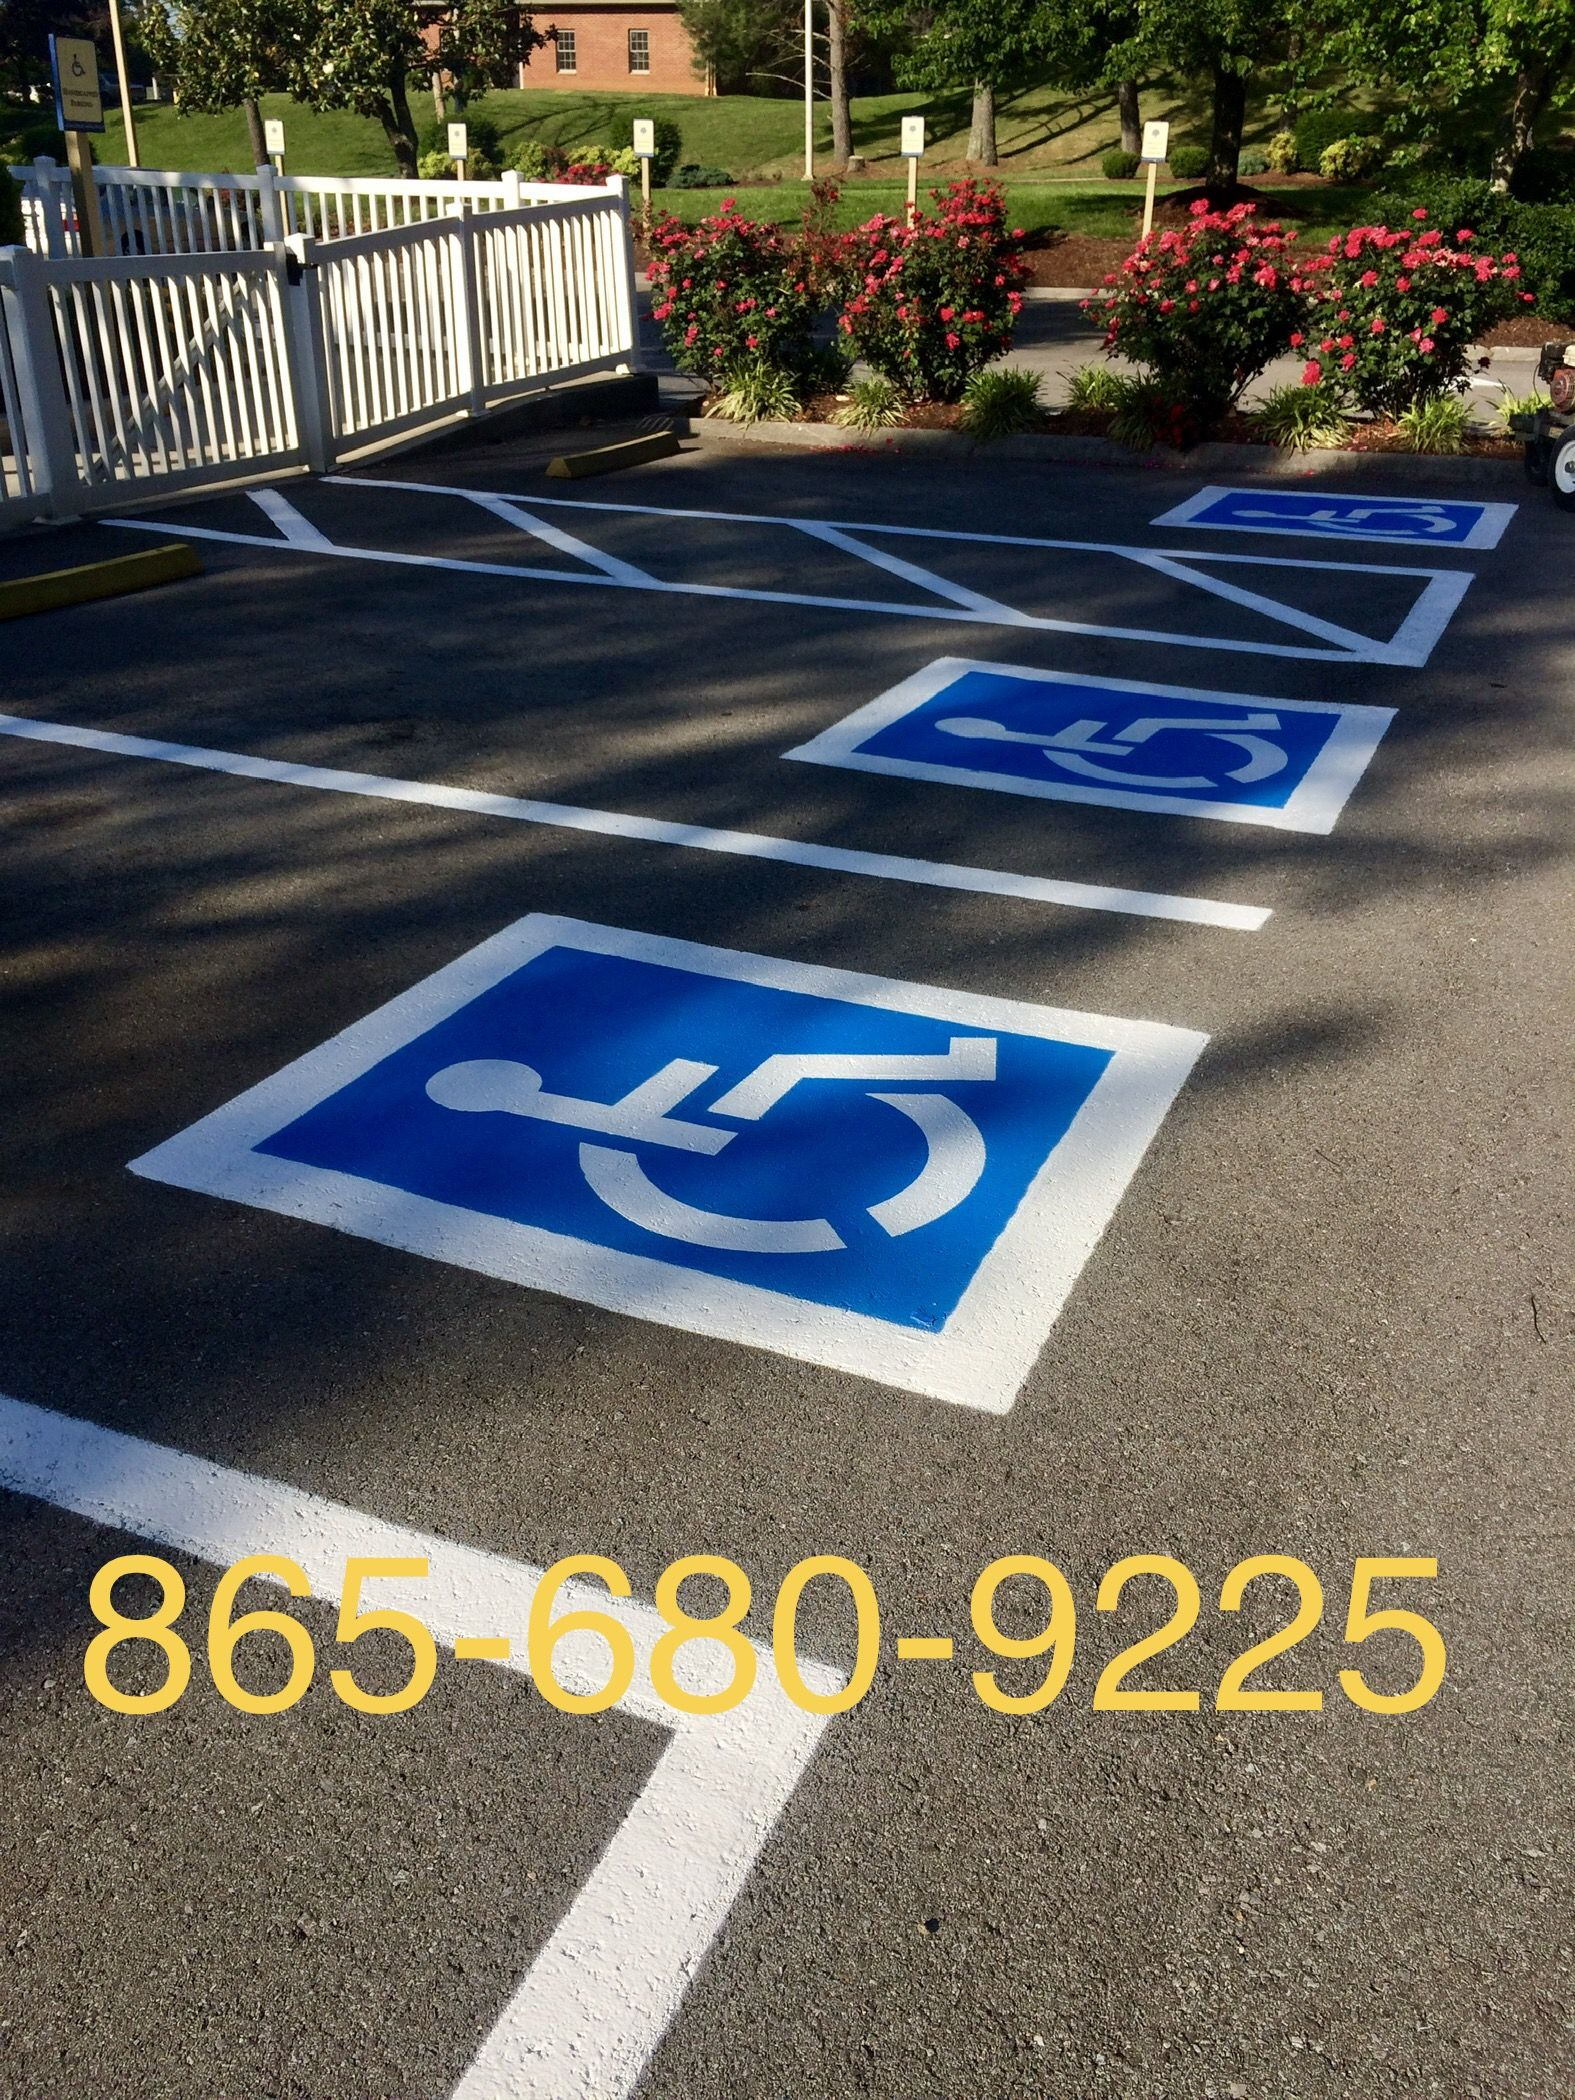 Parking Lot Striping Athens Tn Knoxville Tn Handicap